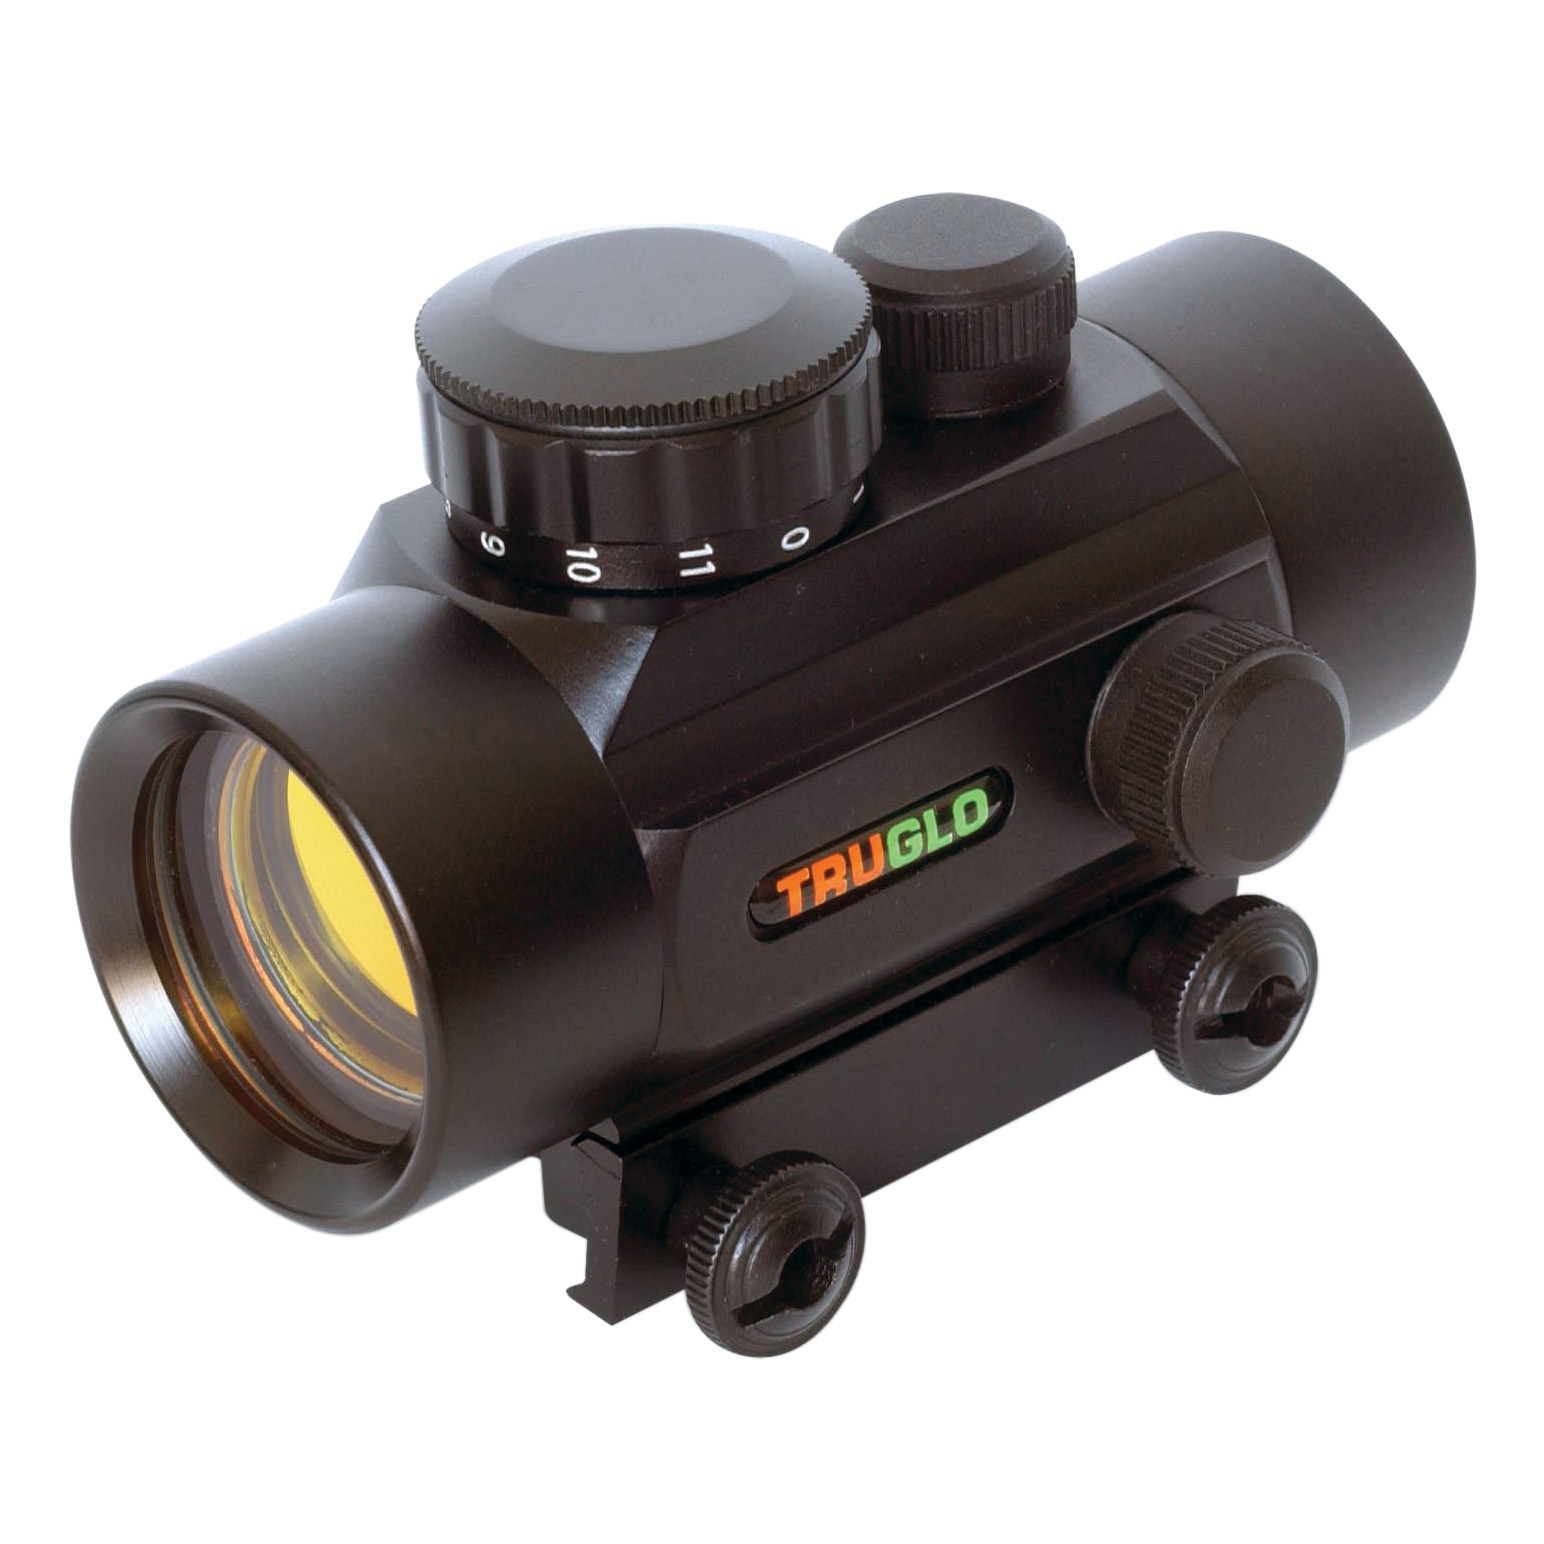 TruGlo Traditional 1×30 Red-Dot Sight, 5 MOA, Black, model TG8030P